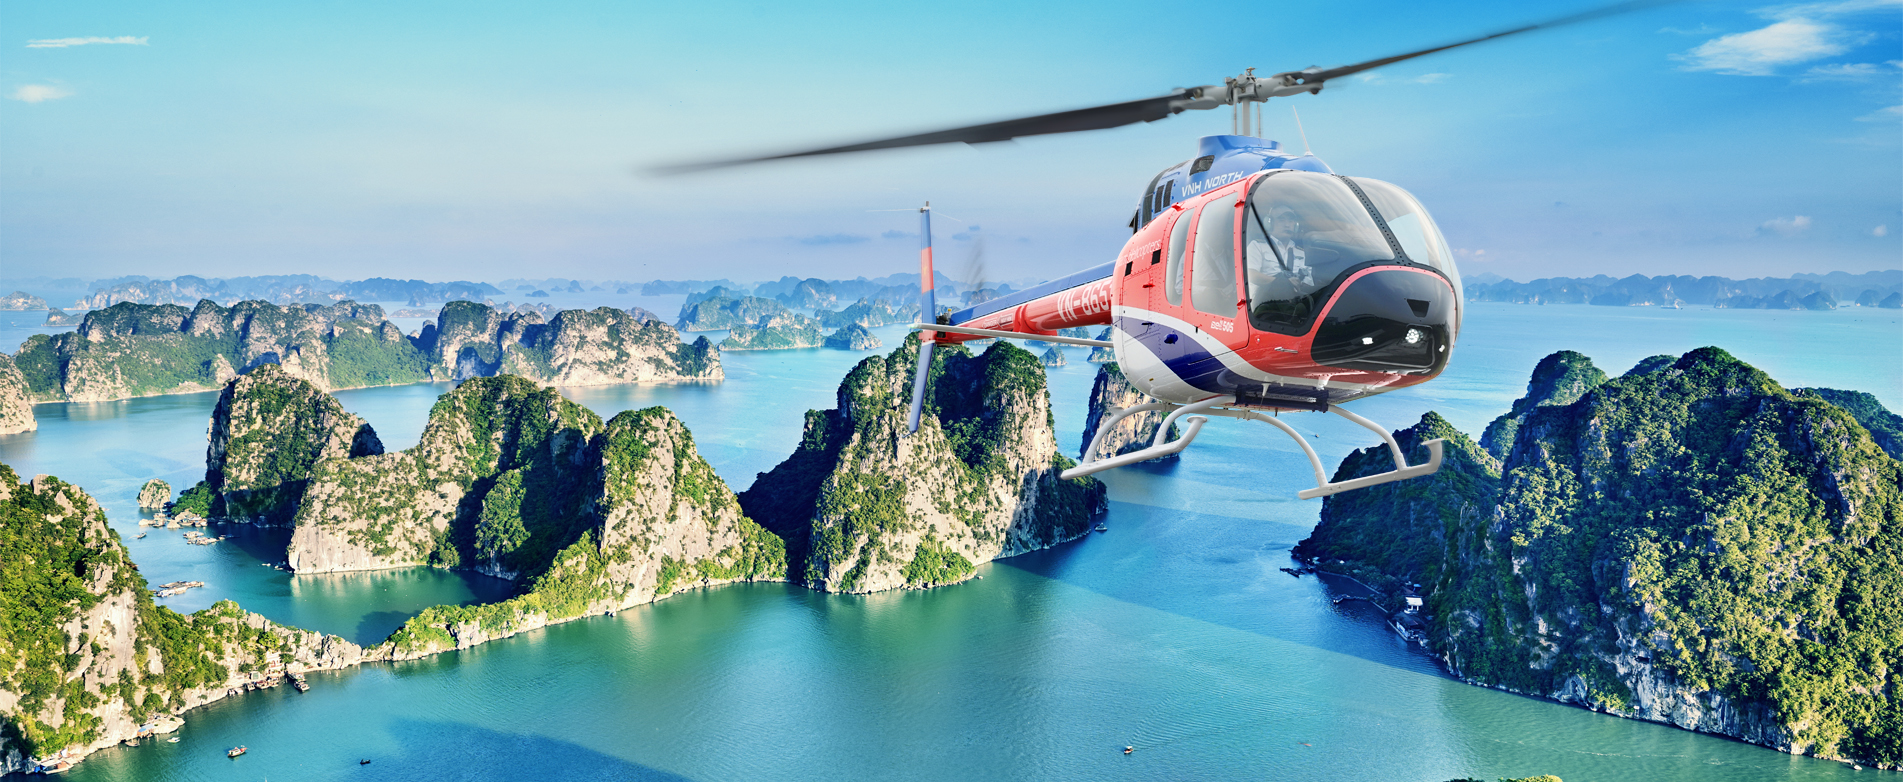 Halong Heli Tours provides the perfect platform for your once in a lifetime experience